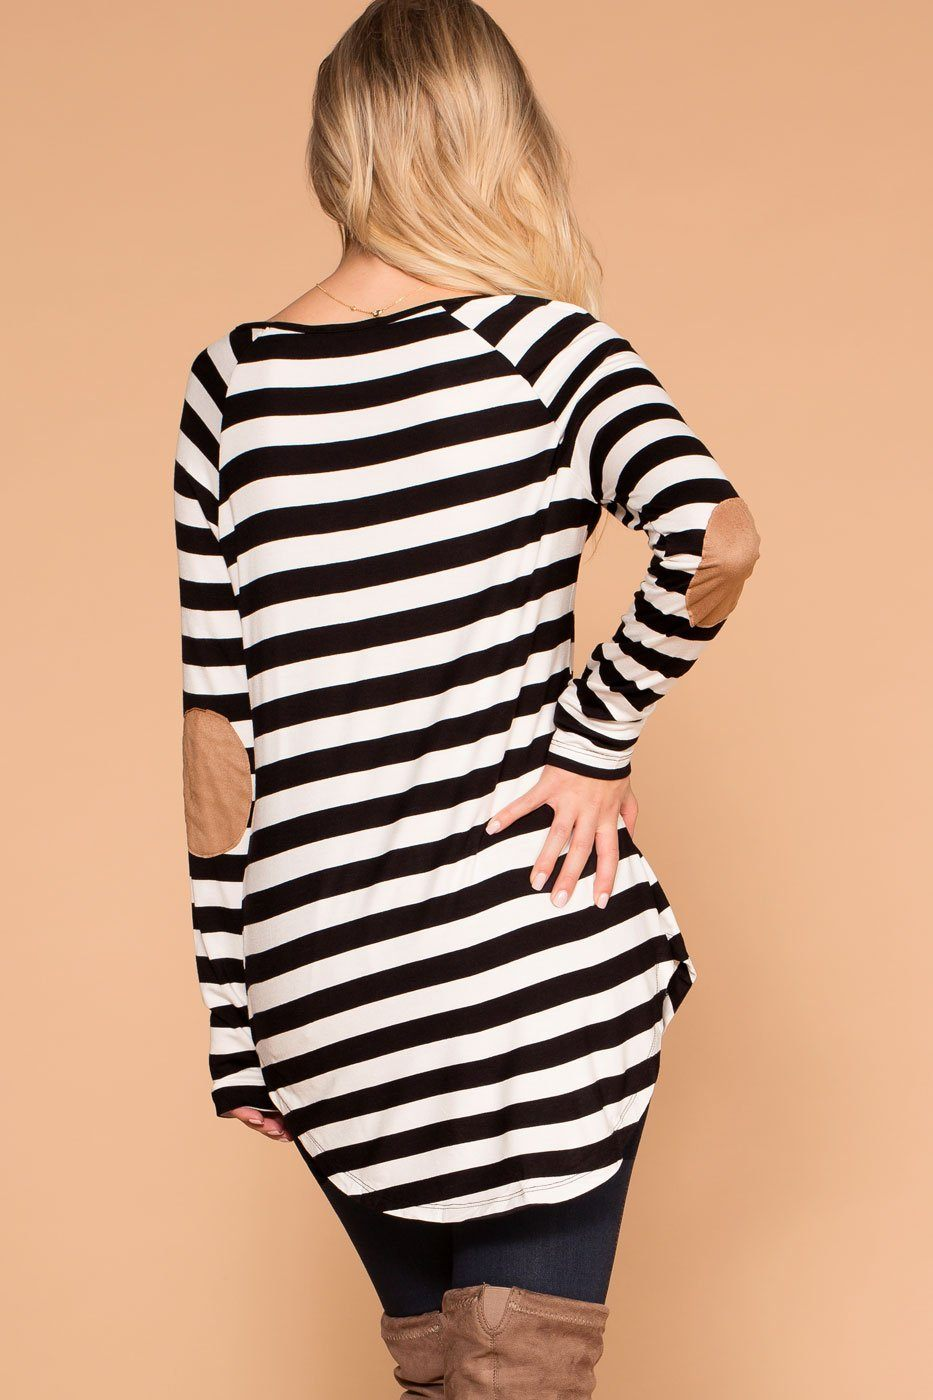 Priceless | Black | Striped Top | Elbow Patch Top | Womens